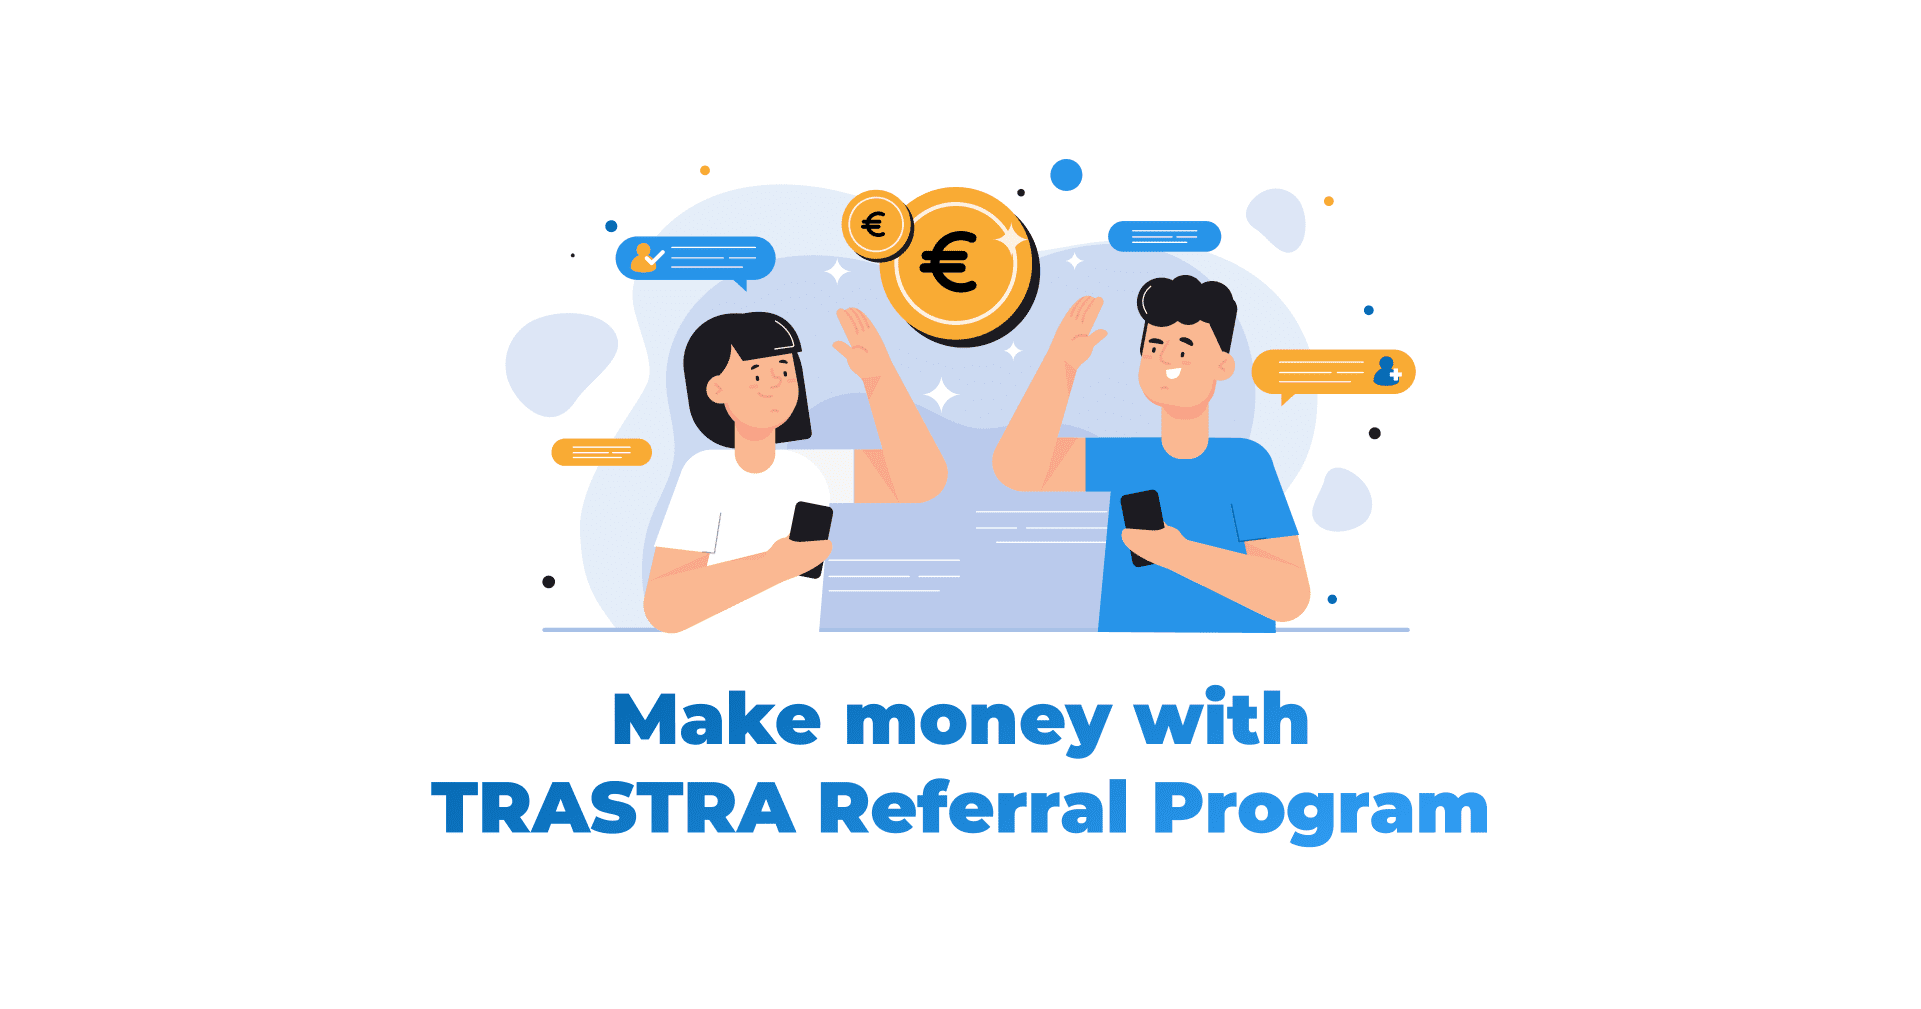 litecoin cash wallet, bitcoin wallet, apps wallet, altcoin wallet, crypto cash, buy cryptocurrency, buy bitcoin with, crypto card, trastra, referral program, affiliate program, make money, trastra card, crypto, cryptocurrency, bitcoin, earn money, 5 euro